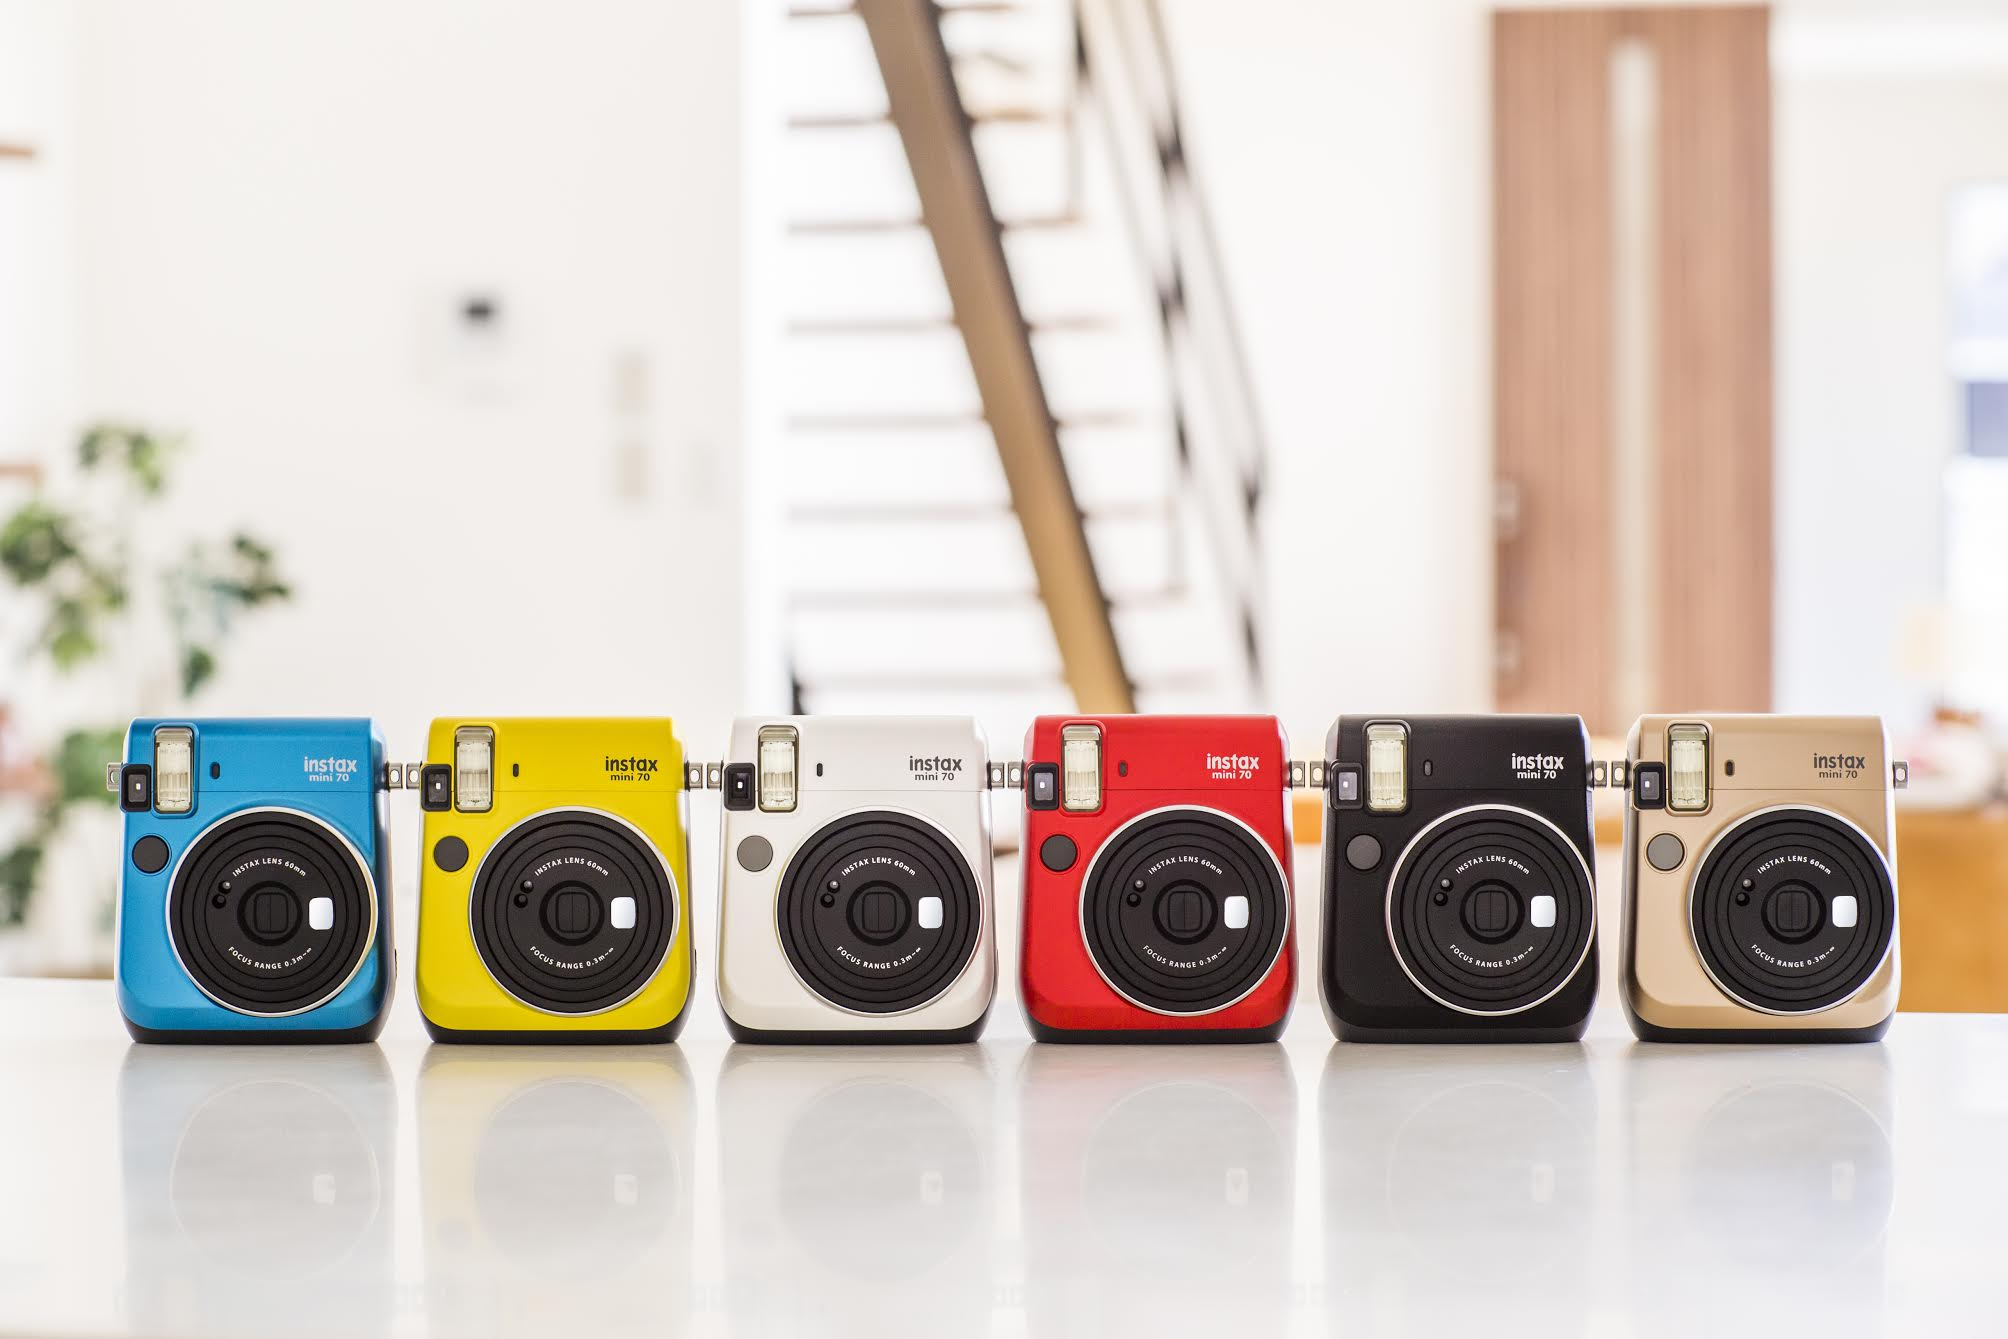 Photo Credit: Fuji Film Instax